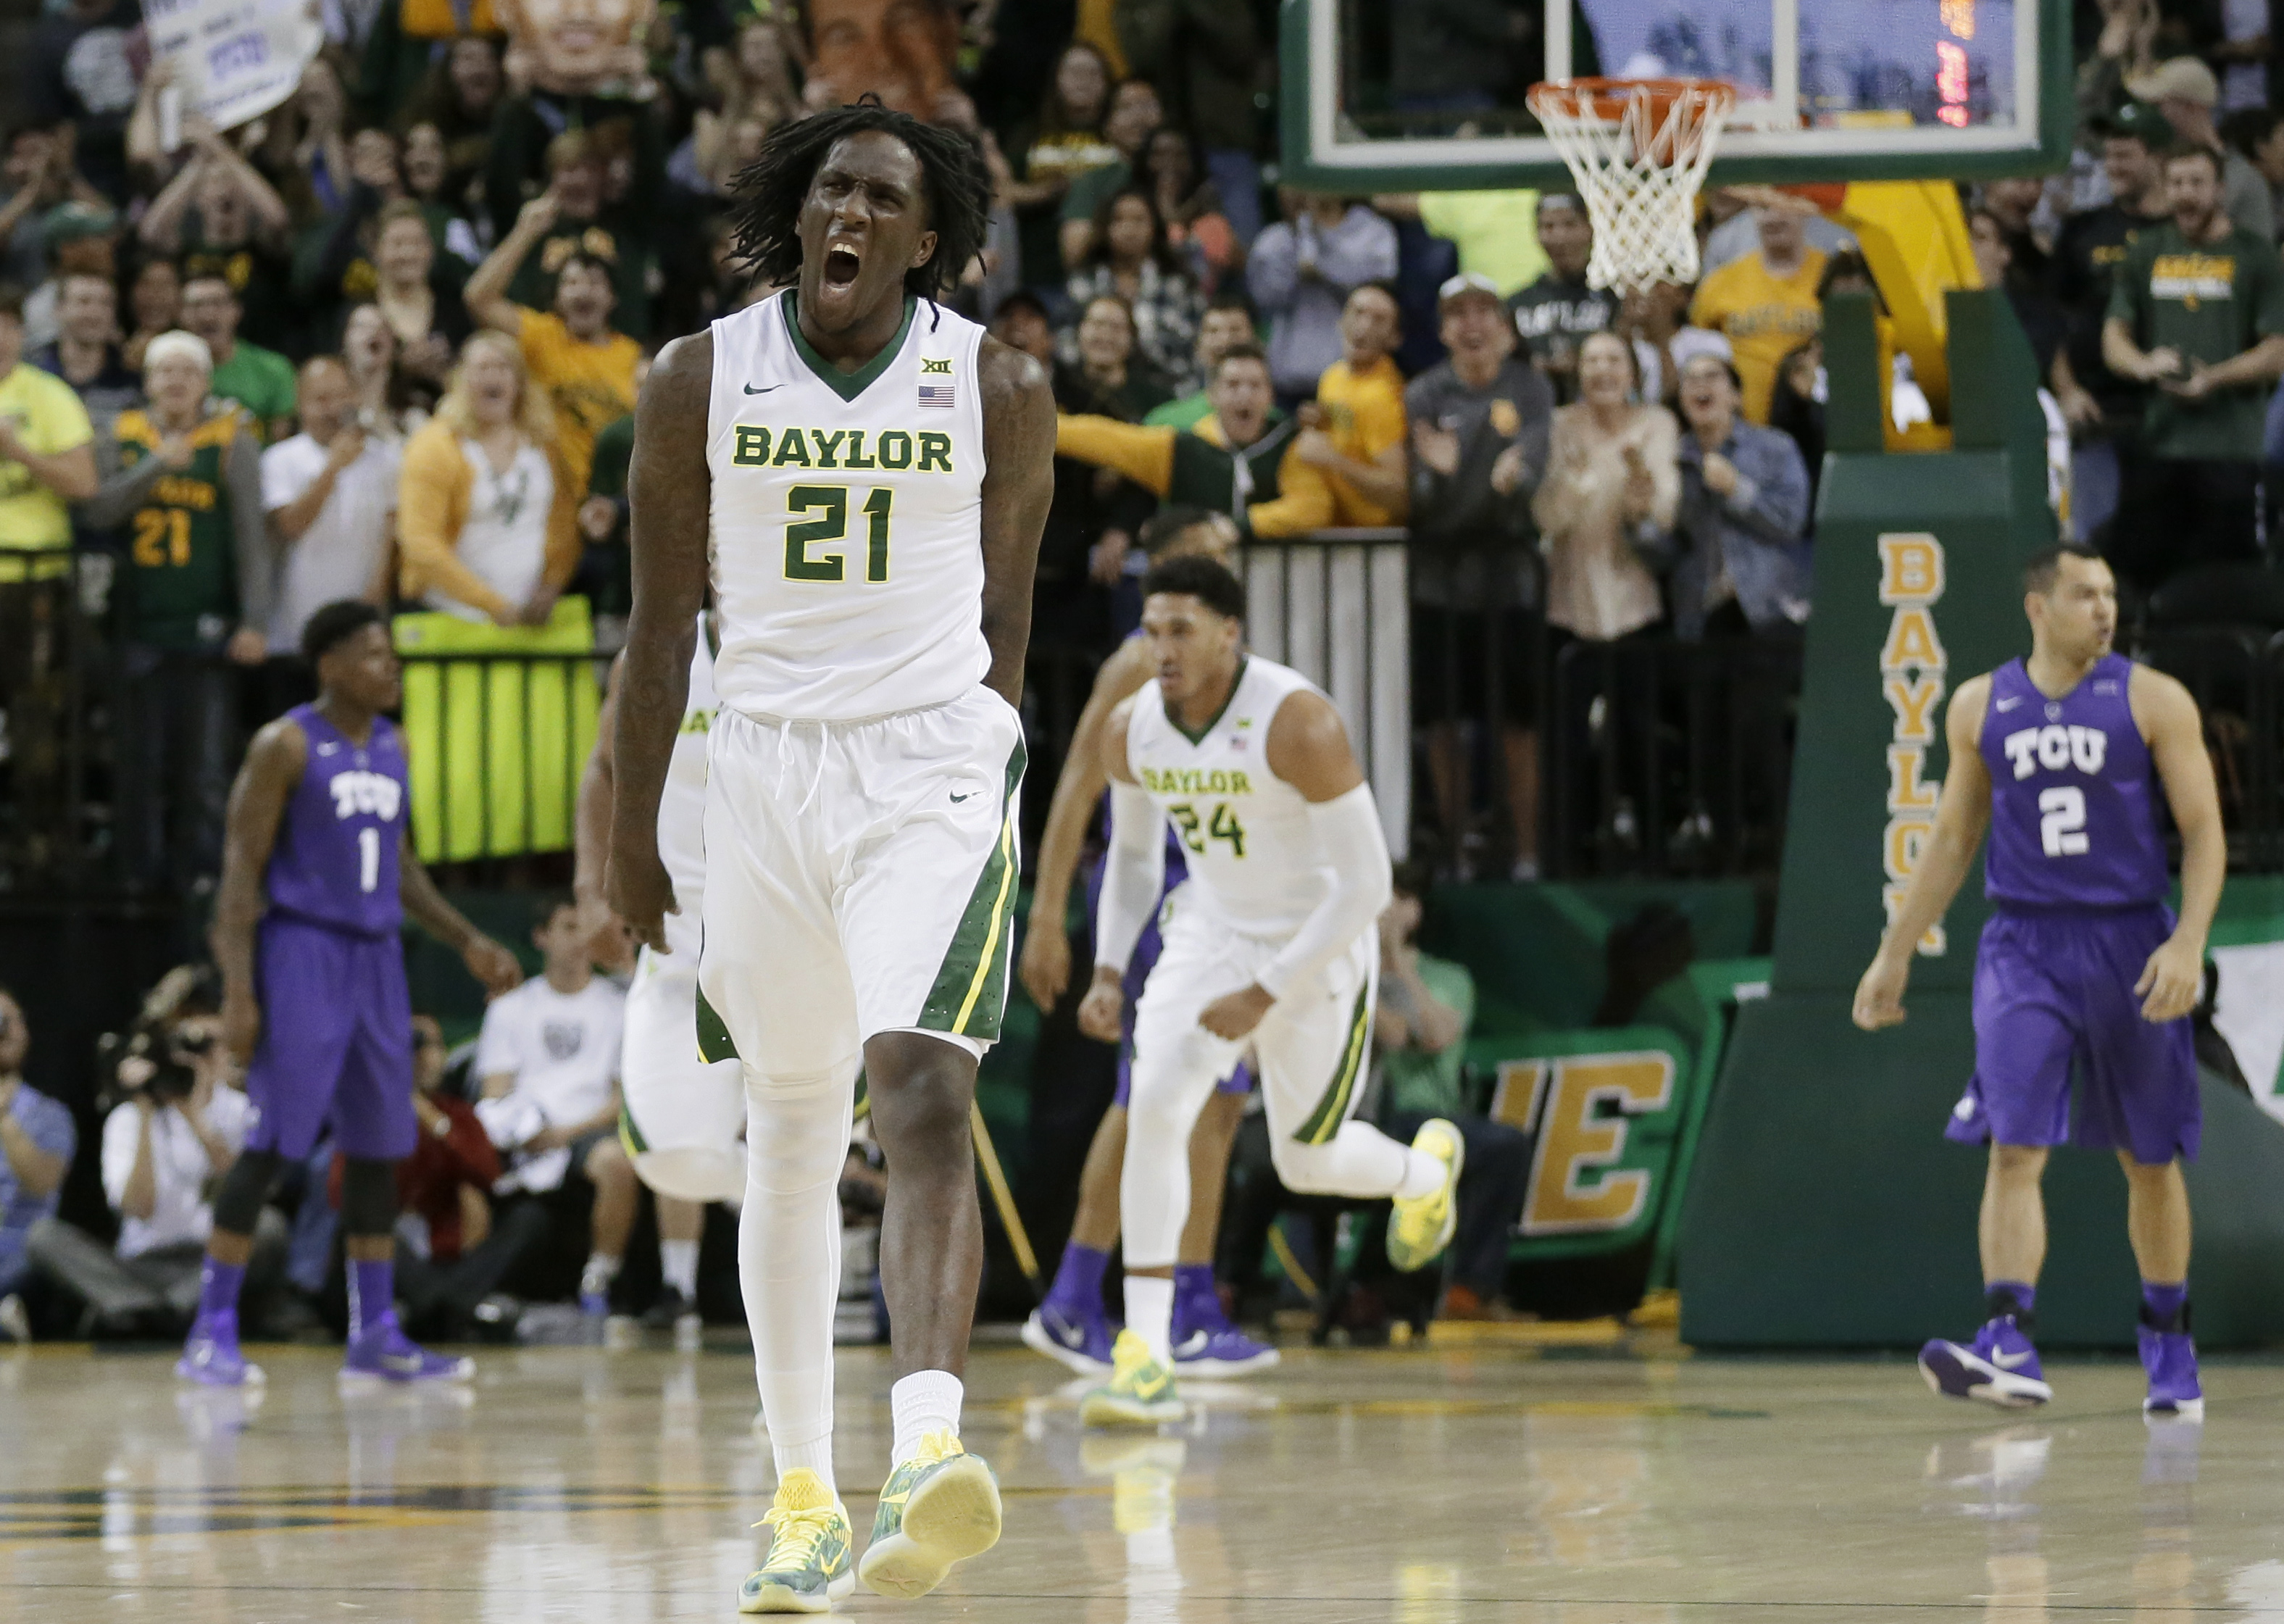 Baylor's Taurean Prince (21) celebrates a score against TCU in the first half of an NCAA college basketball game, Wednesday, Jan. 13, 2016, in Waco, Texas. (AP Photo/Tony Gutierrez)